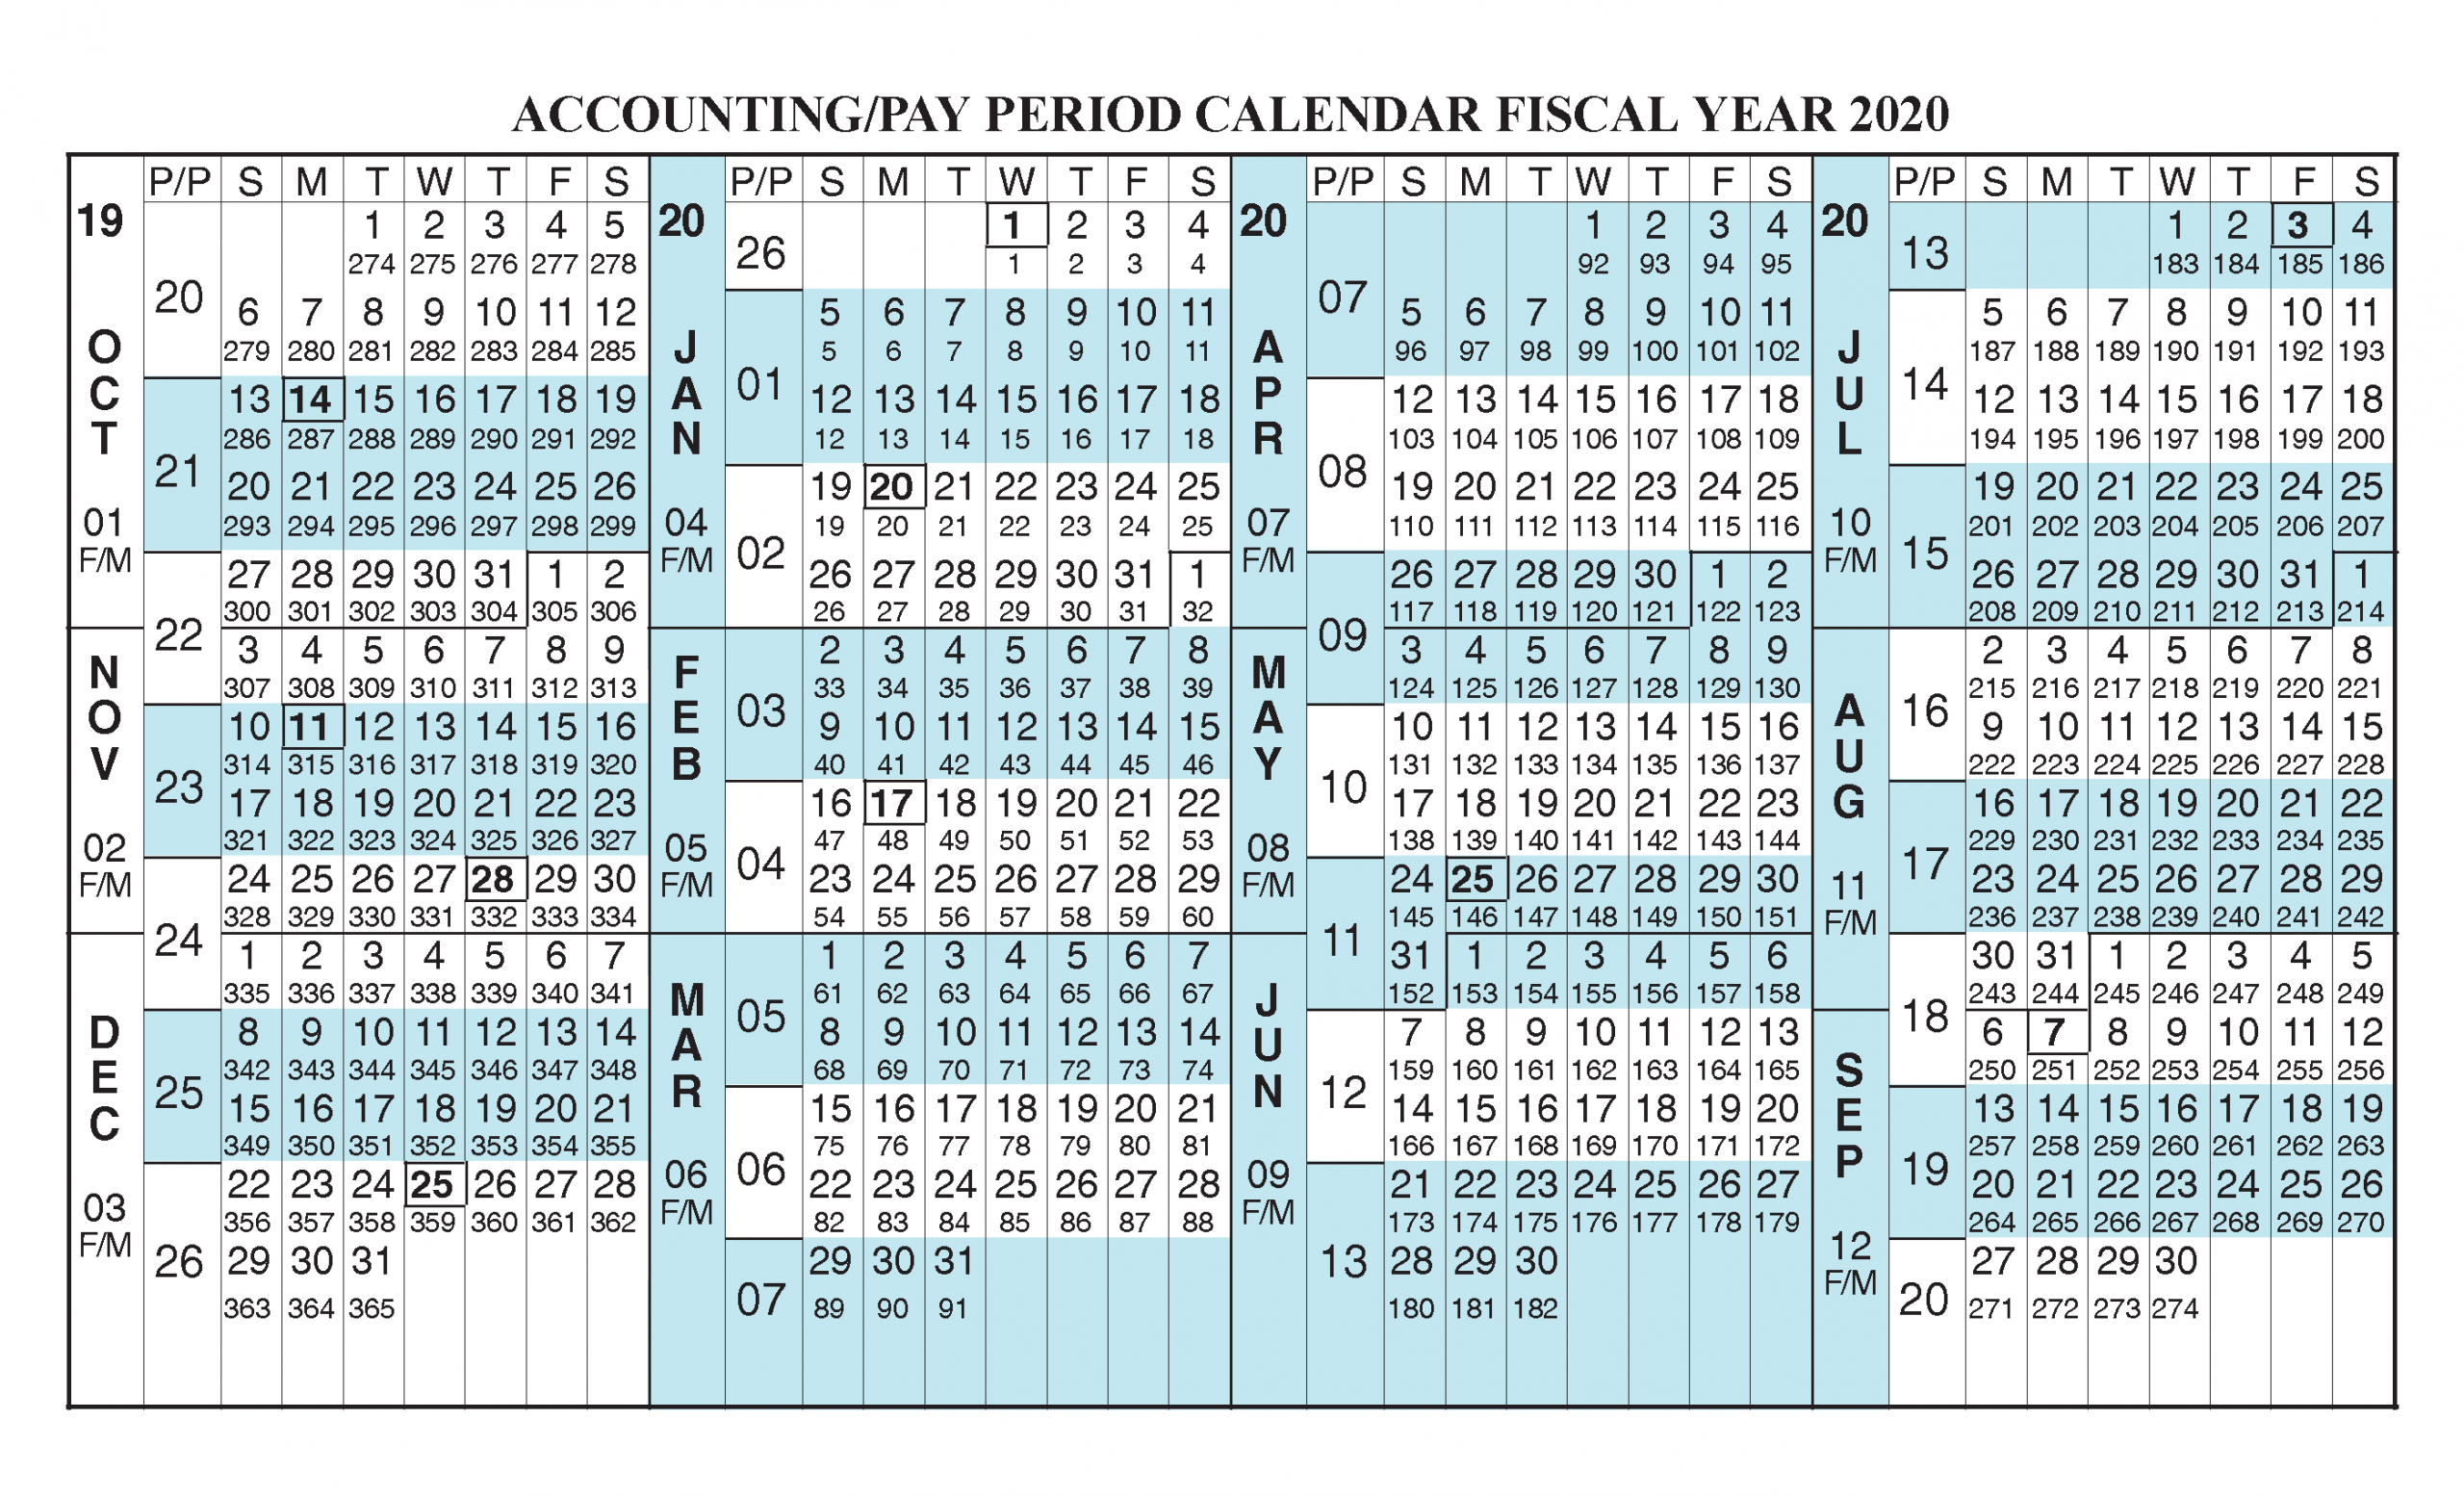 Payroll Calendar 2020 Fiscal Year Calendar [ Oct 2019 - Sep